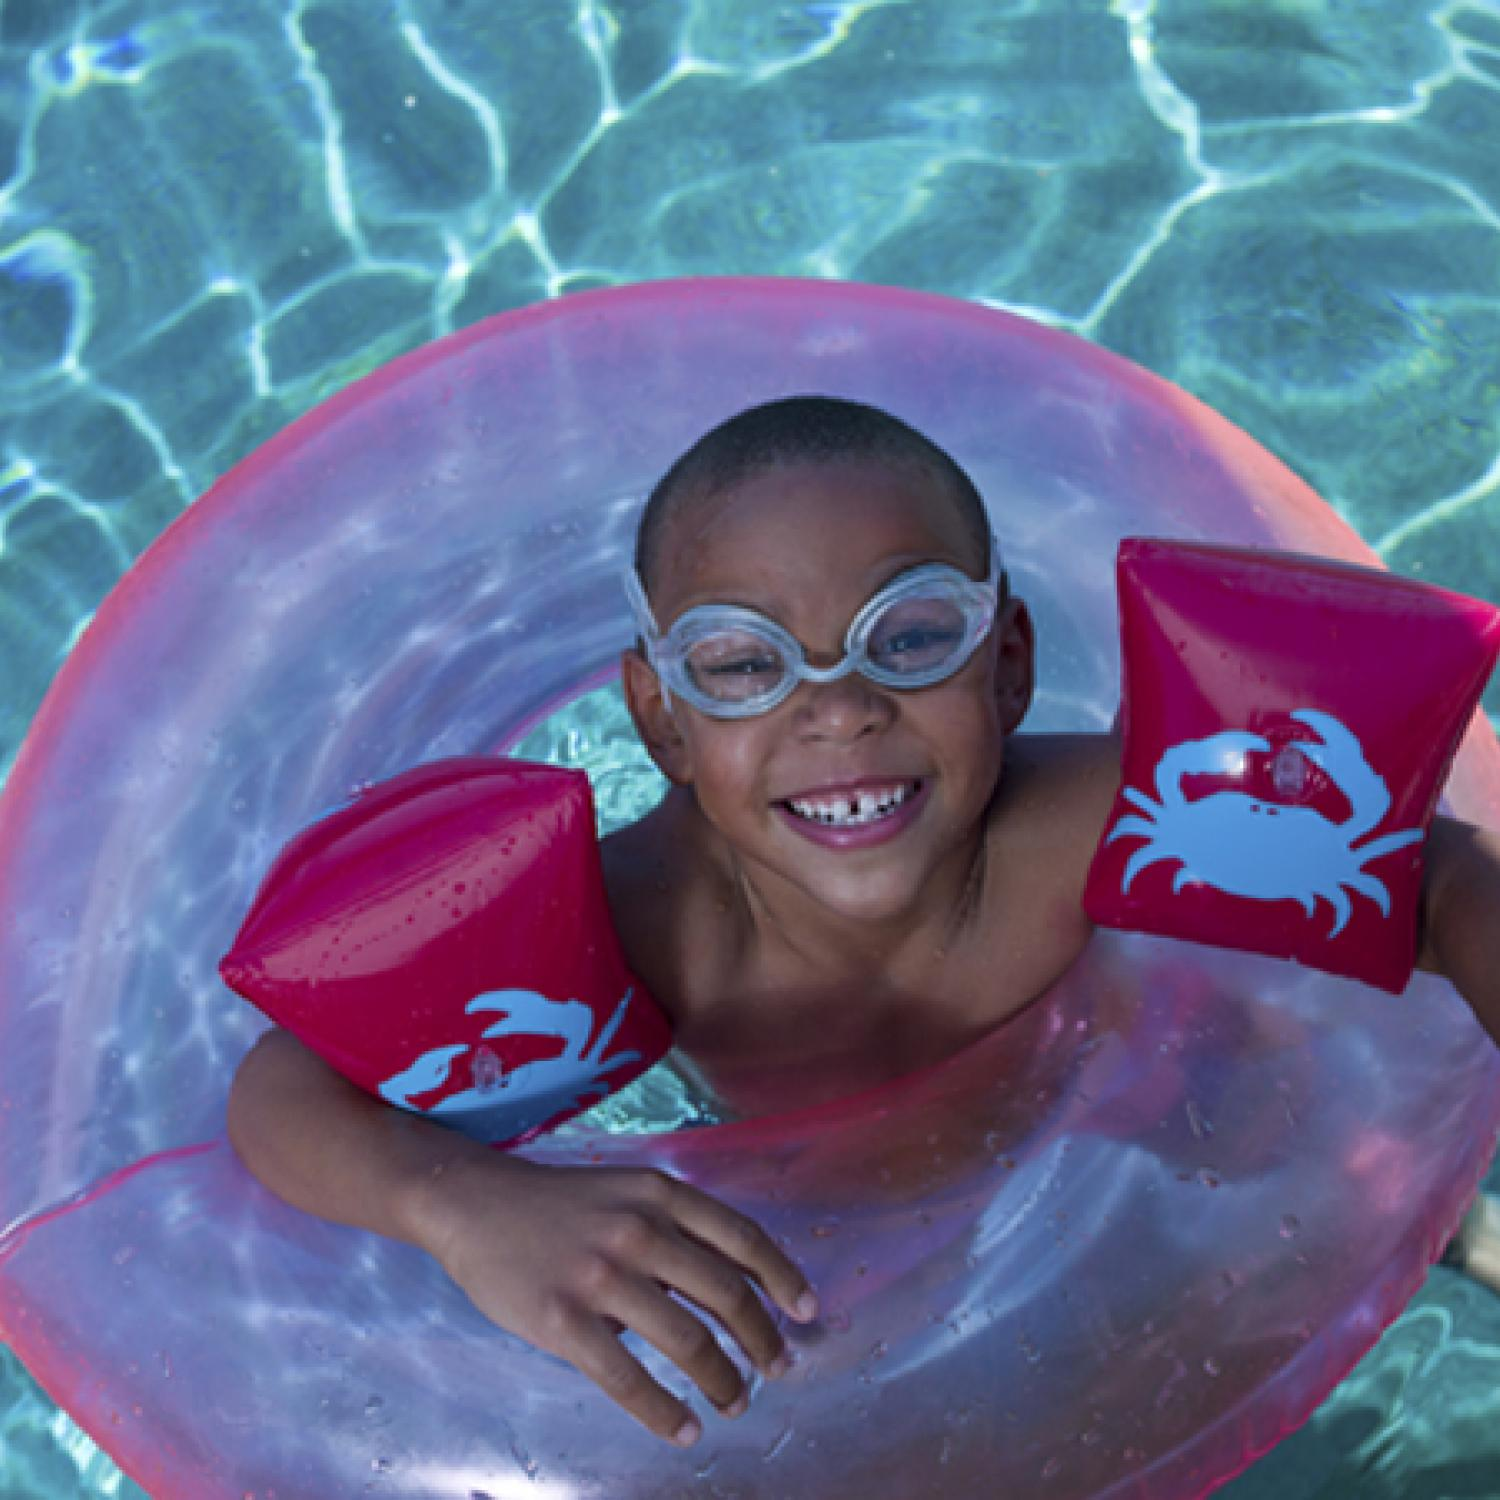 Swimming With Floaties And Other Water Safety Products Parenting